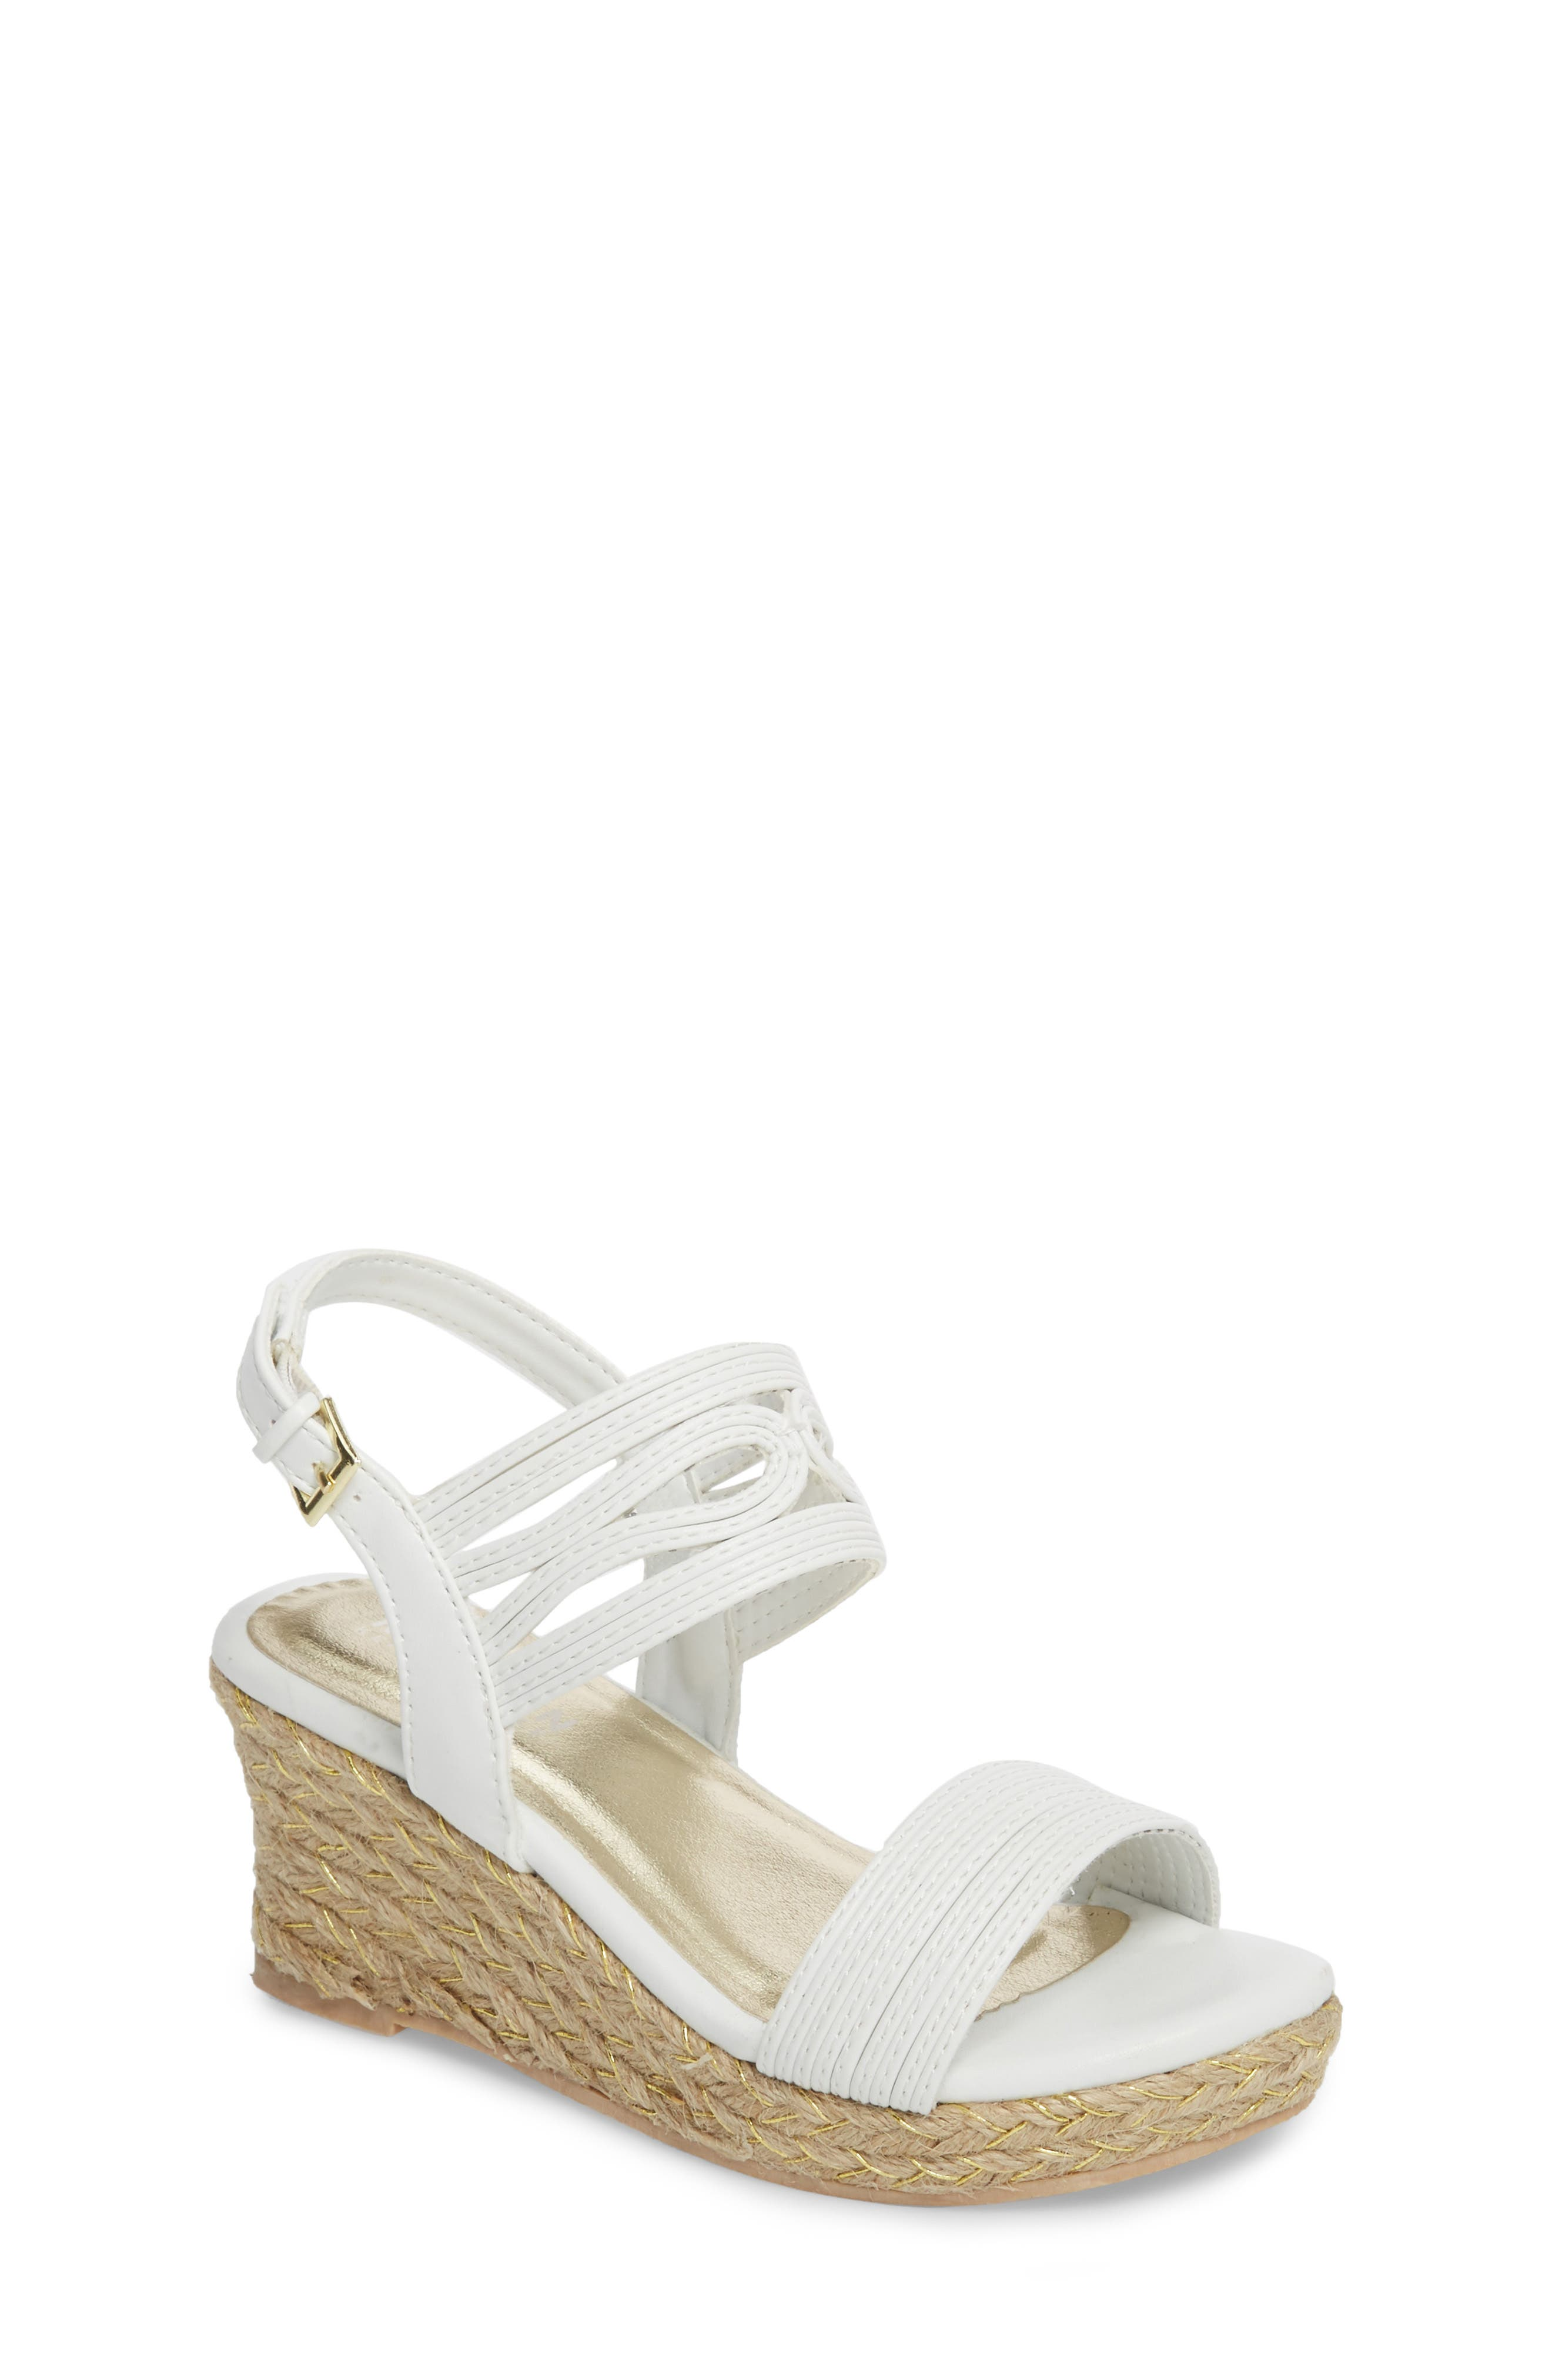 Reed Day Wedge Sandal,                         Main,                         color, White